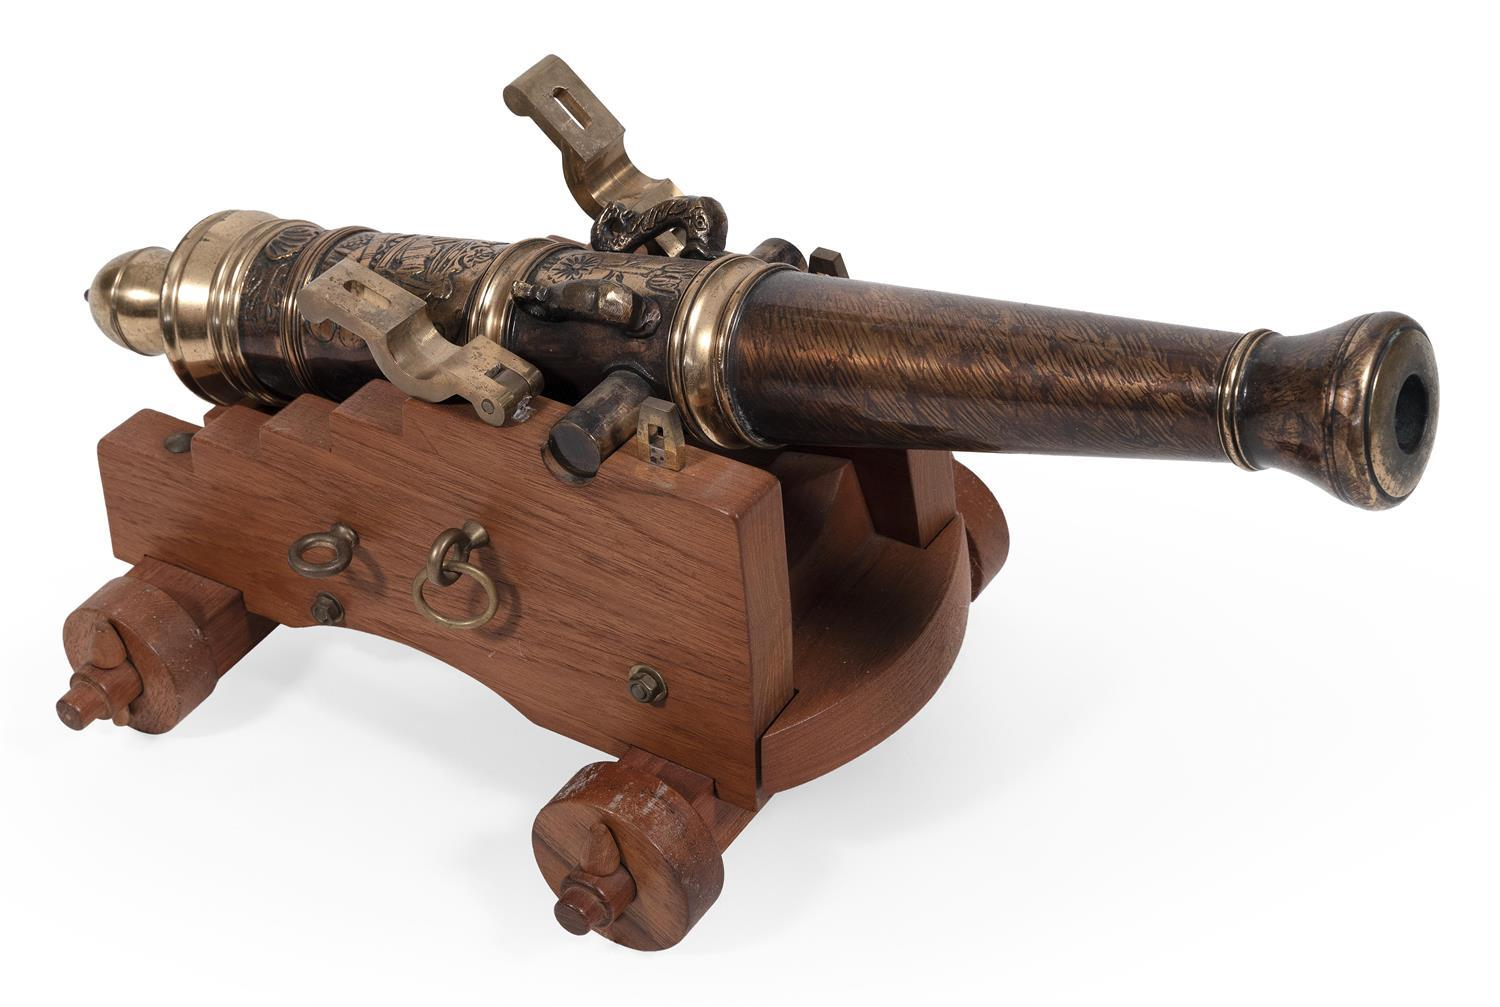 "MODERN COPY OF AN 18TH CENTURY BRASS CANNON MODEL Mounted on a wooden carriage. Length 25"". Not intended to be used as a signal cann..."